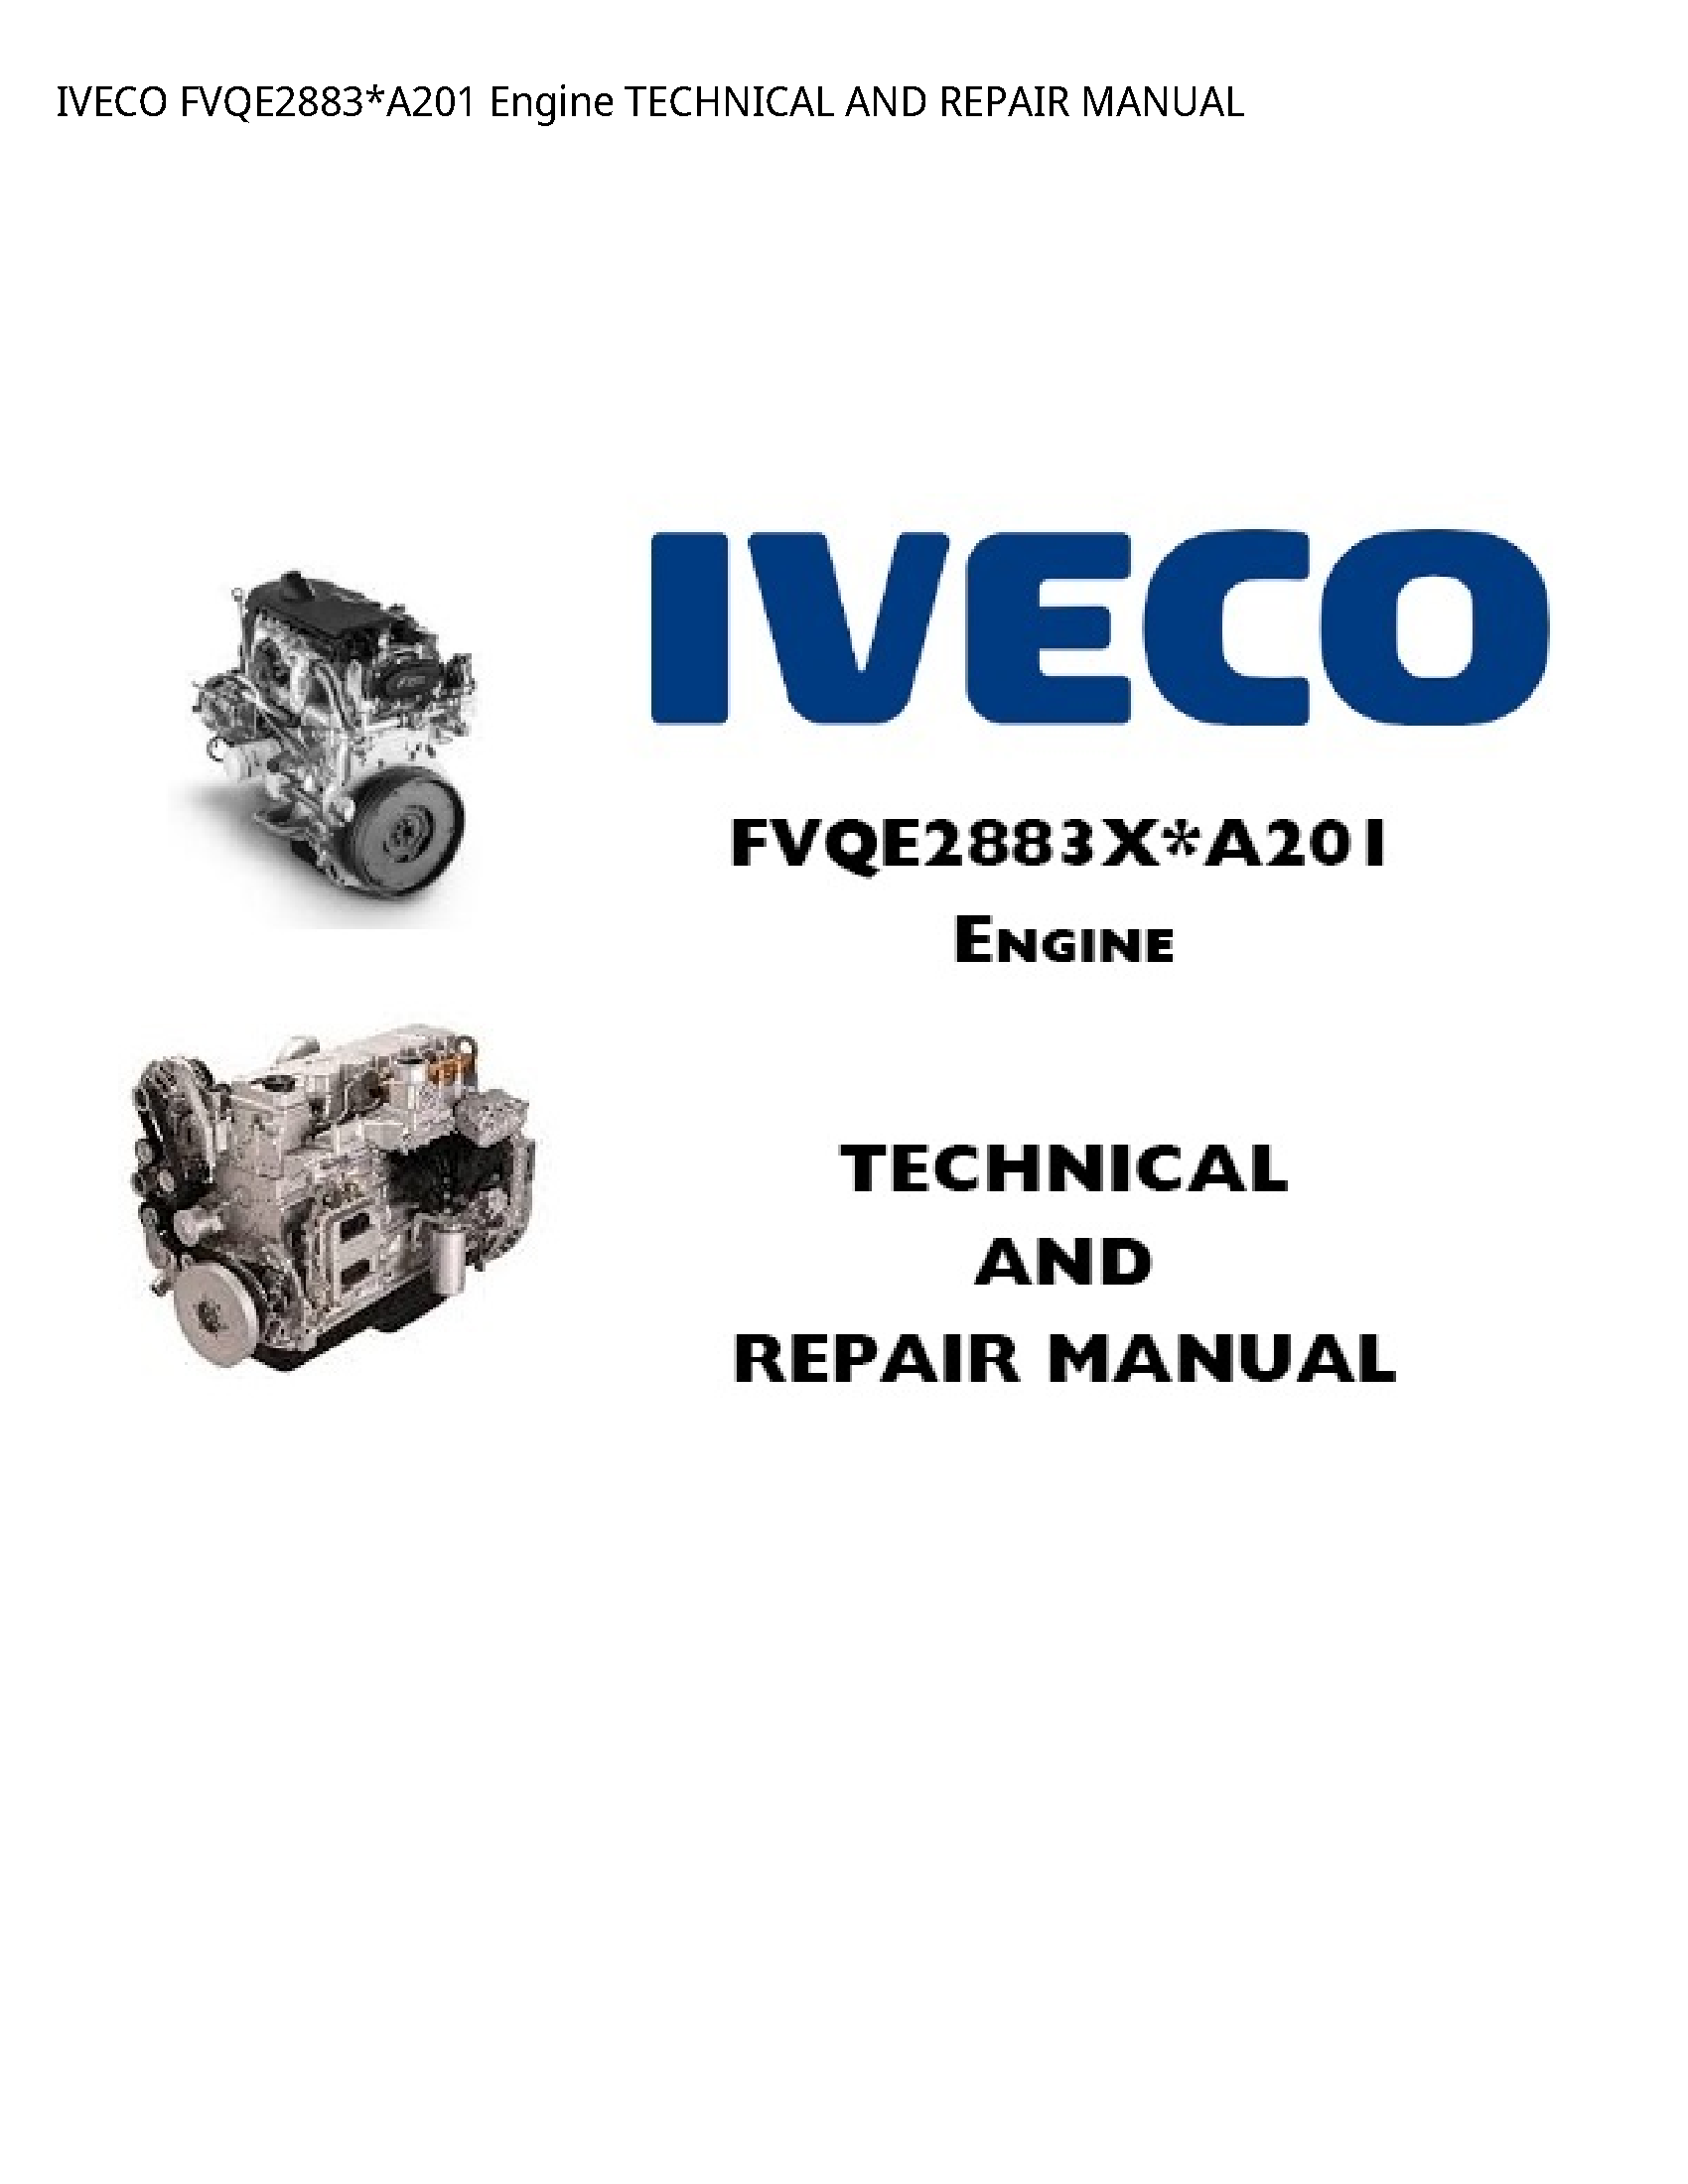 Iveco FVQE2883*A201 Engine TECHNICAL AND REPAIR manual